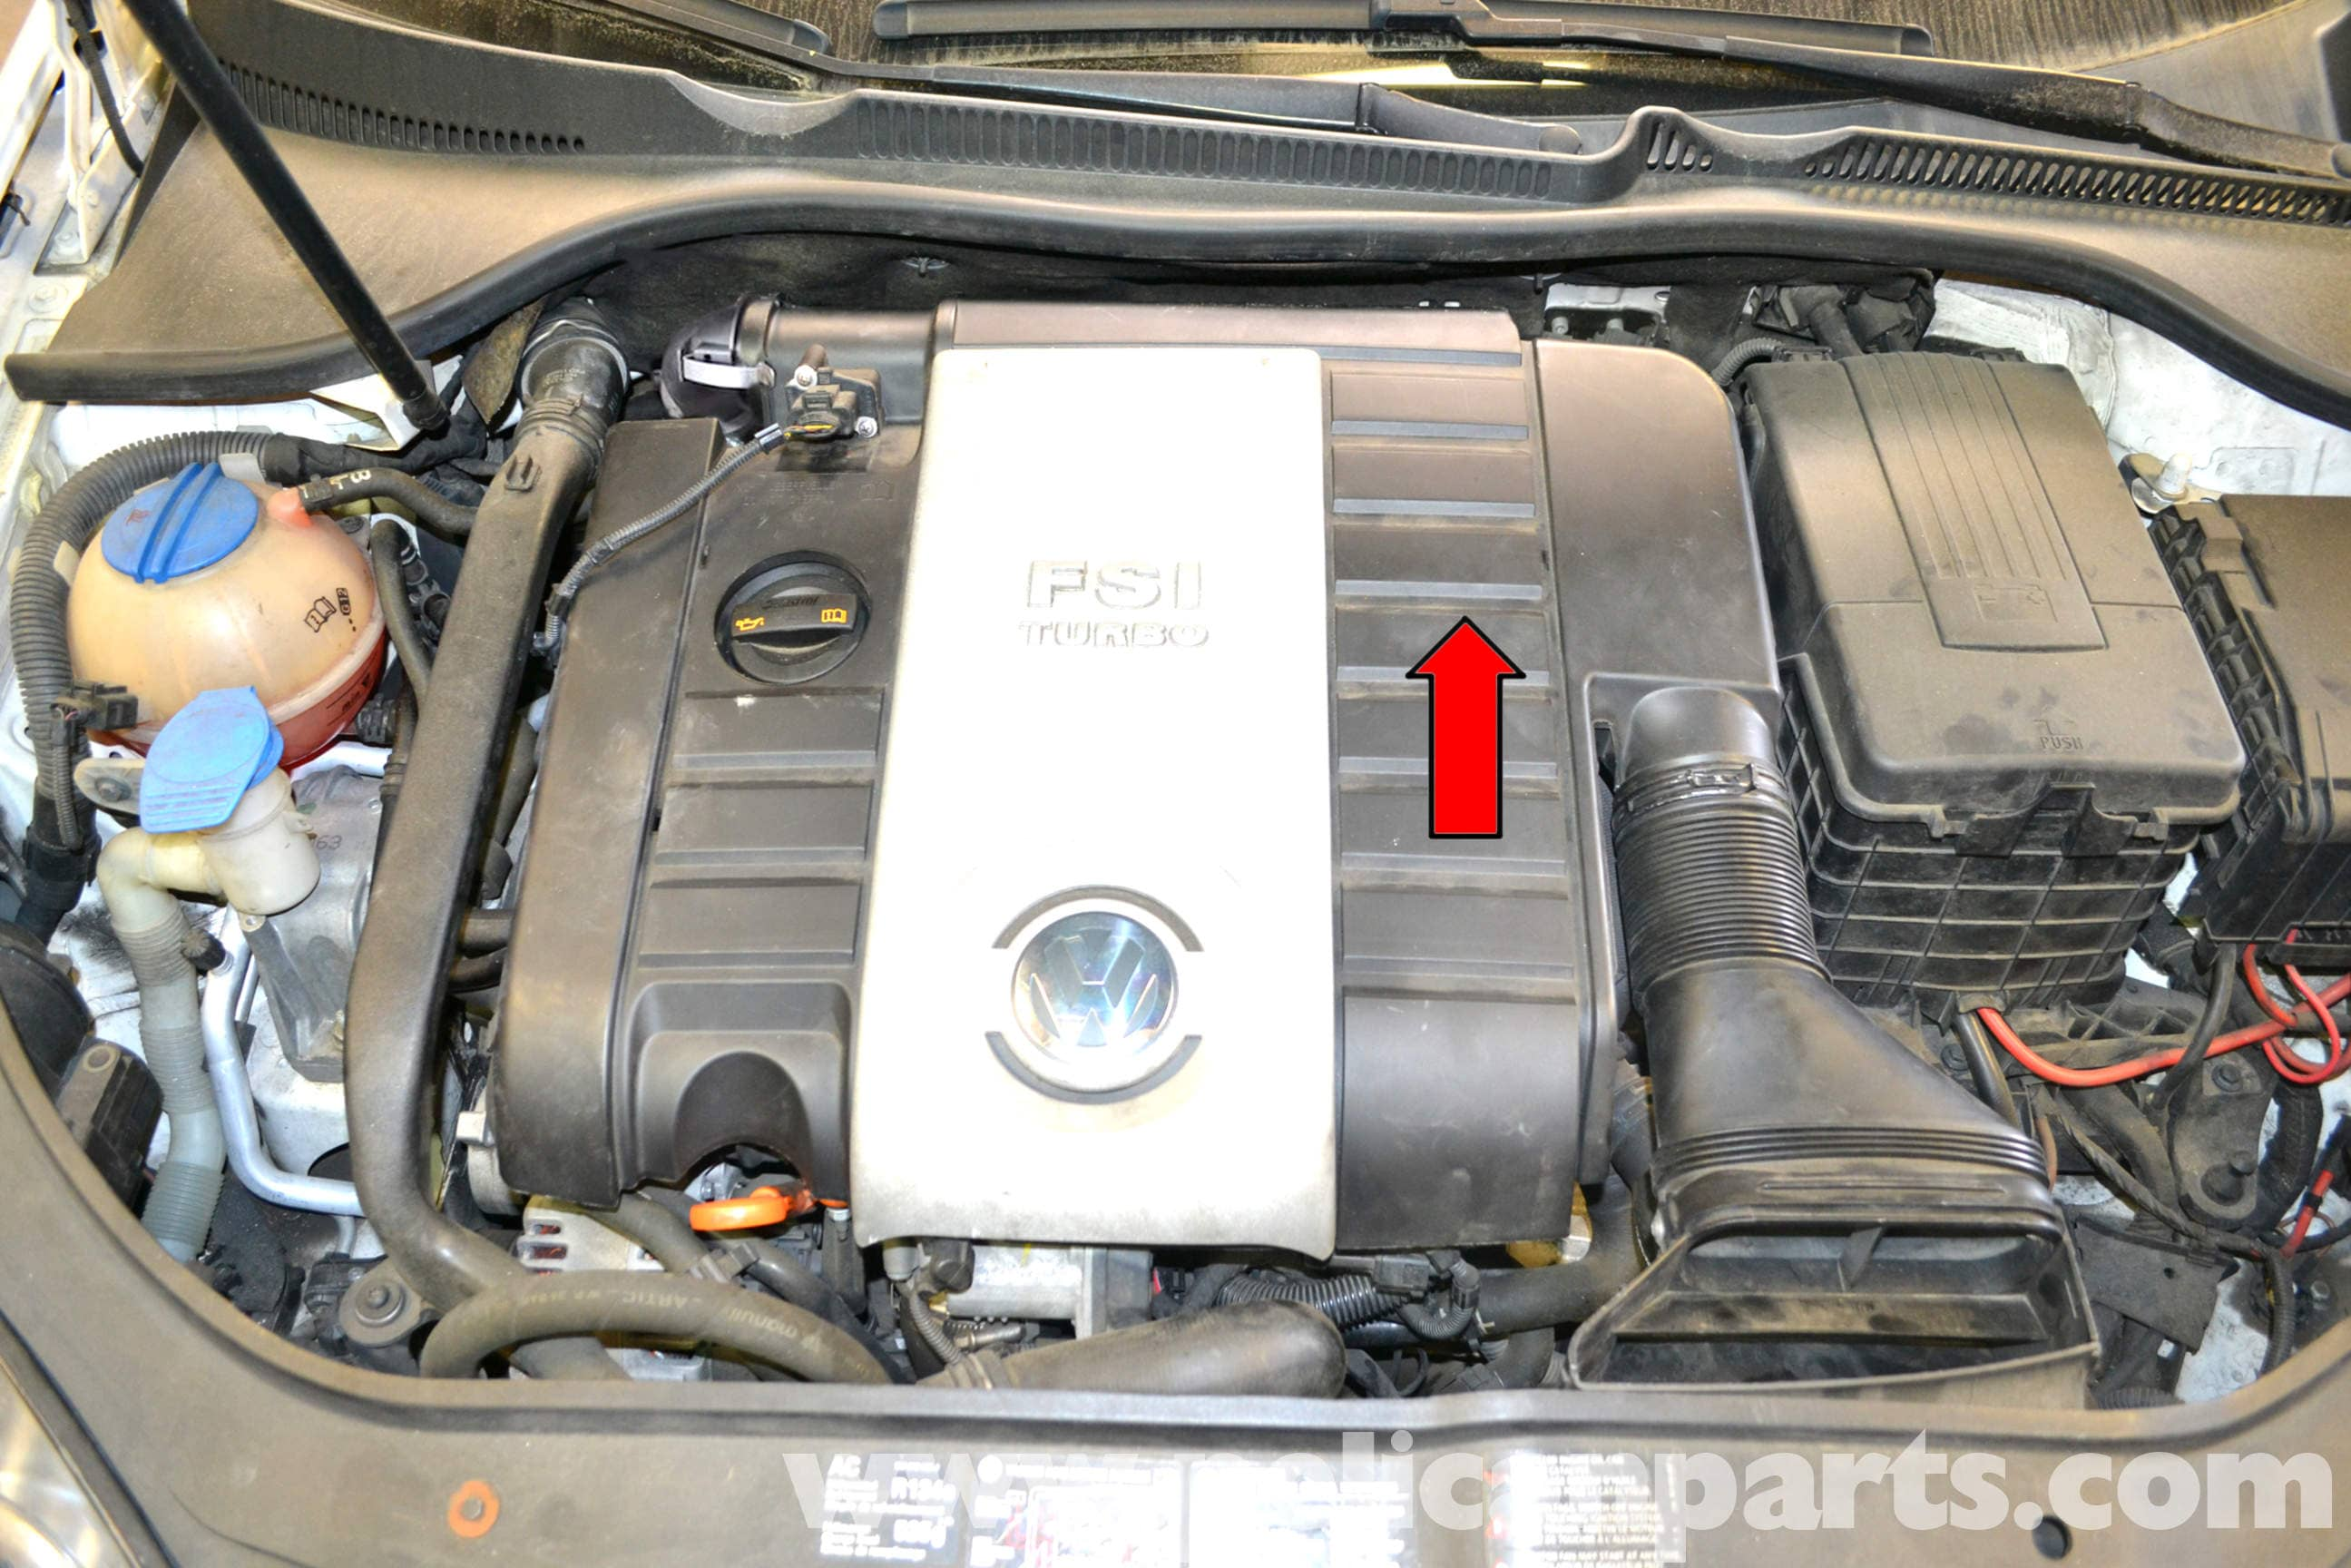 Volkswagen Golf Gti Mk V Engine Cover Removal 2006 2009 Pelican Parts Diy Maintenance Article